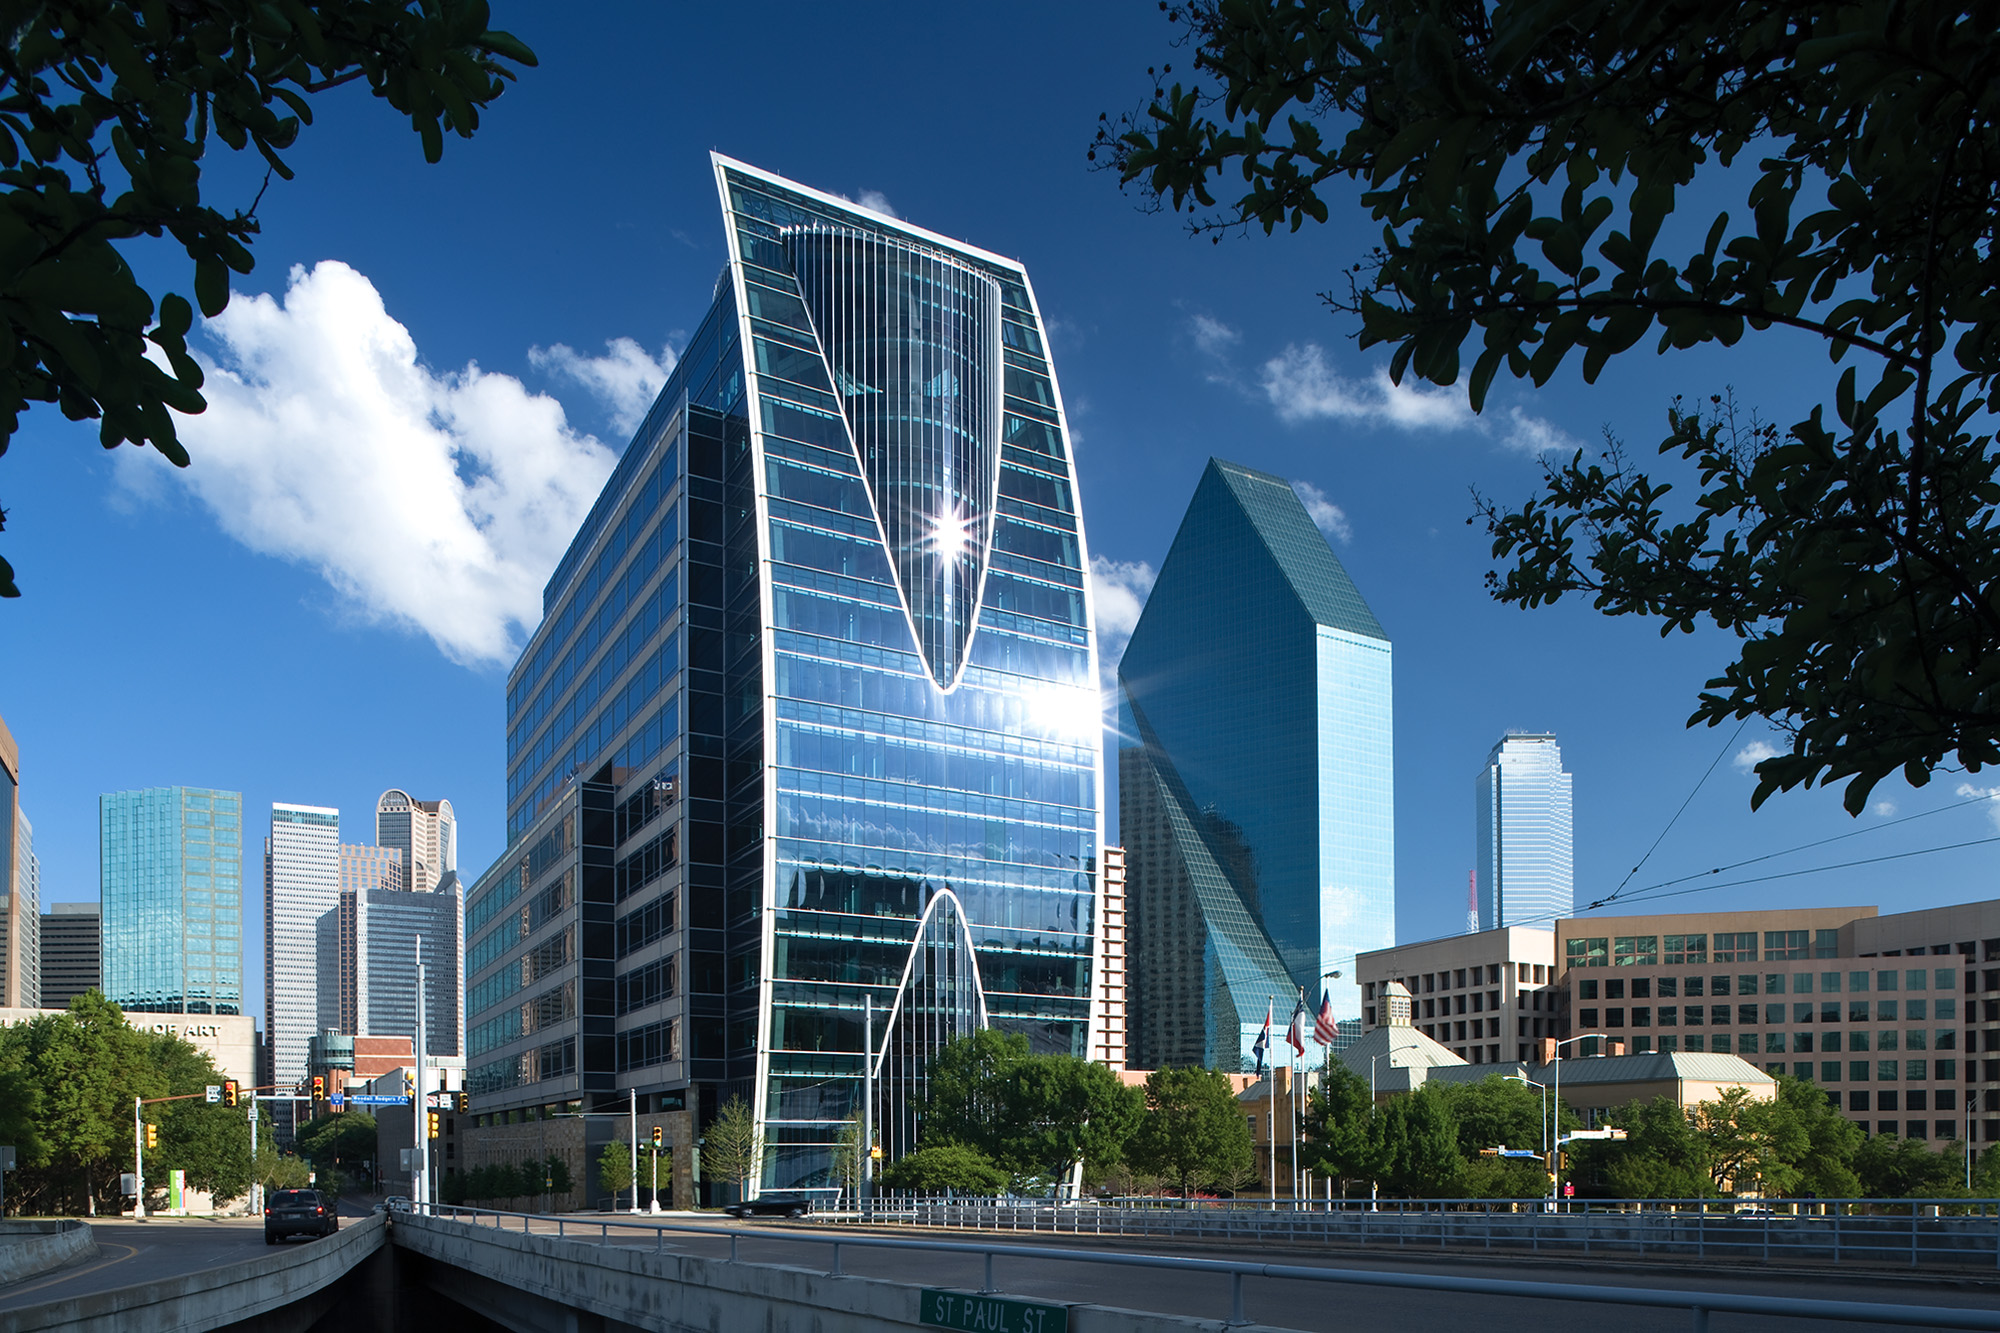 City Of Dallas Careers >> Hunt Oil Company Headquarters - The Beck Group